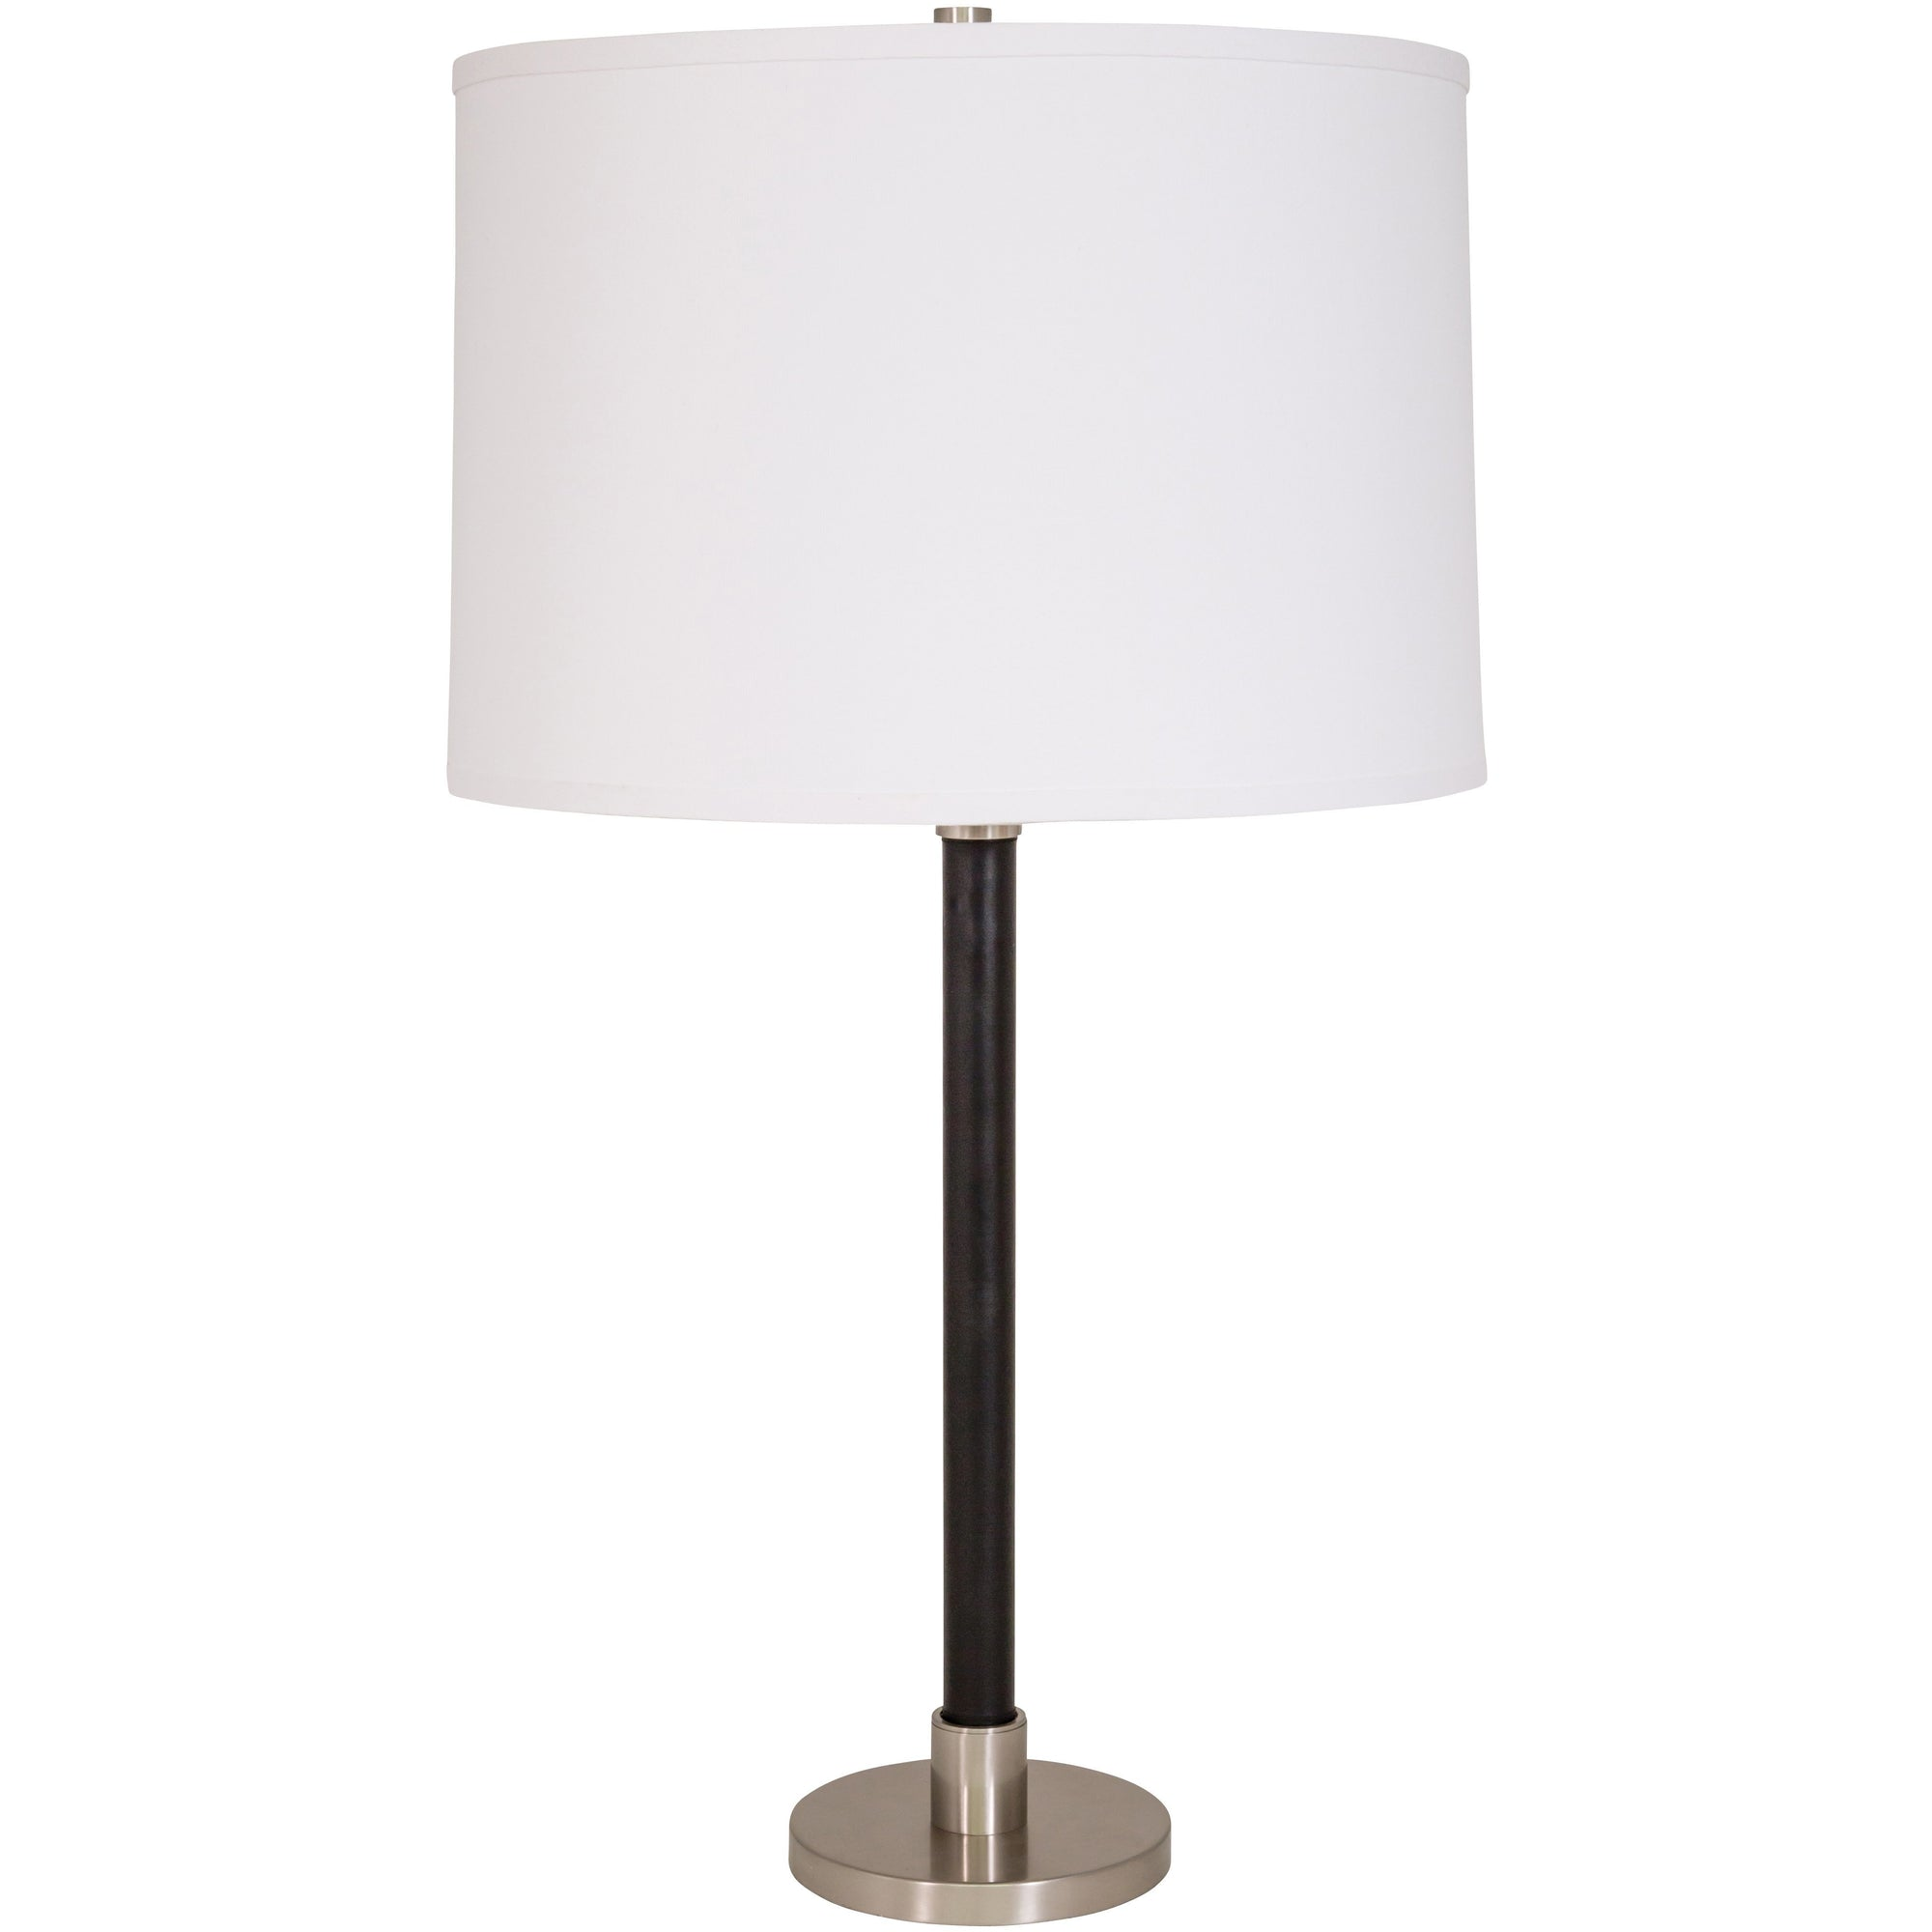 House Of Troy Table Lamps Hardwick Six Way Table Lamp by House Of Troy H553-SN